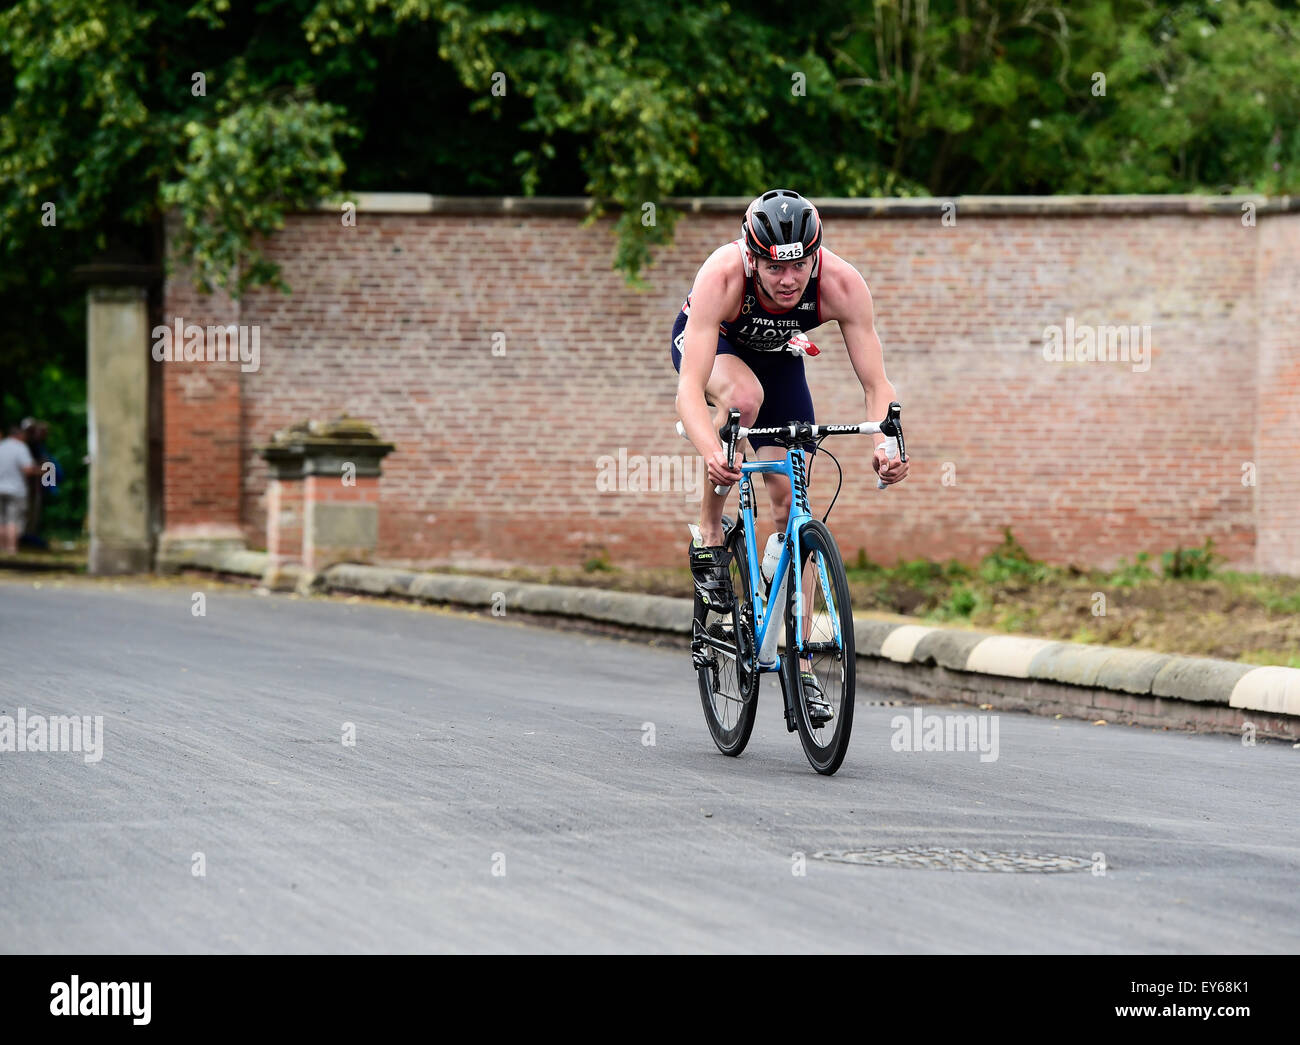 Team GBR Triathlete Liam Lloyd on the bike split during the 2015 Jenson Button Trust Triathlon in aid of Cancer - Stock Image